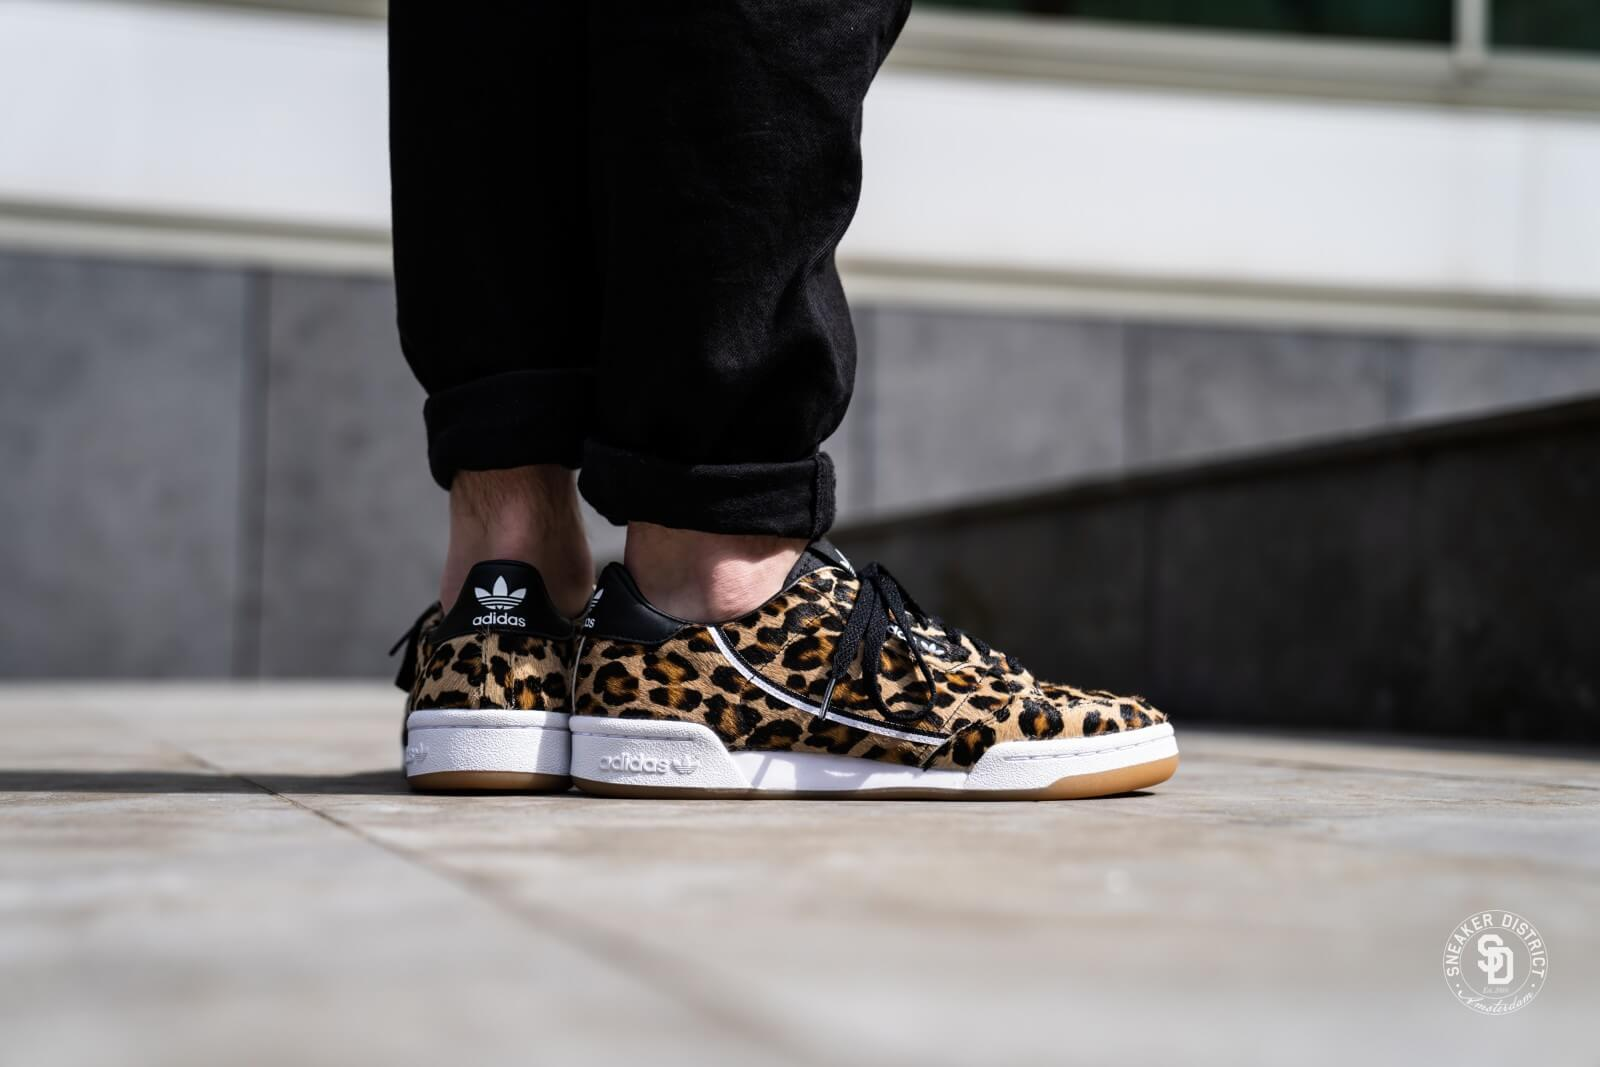 Adidas Continental 80 Leopard Core Black/Footwear White